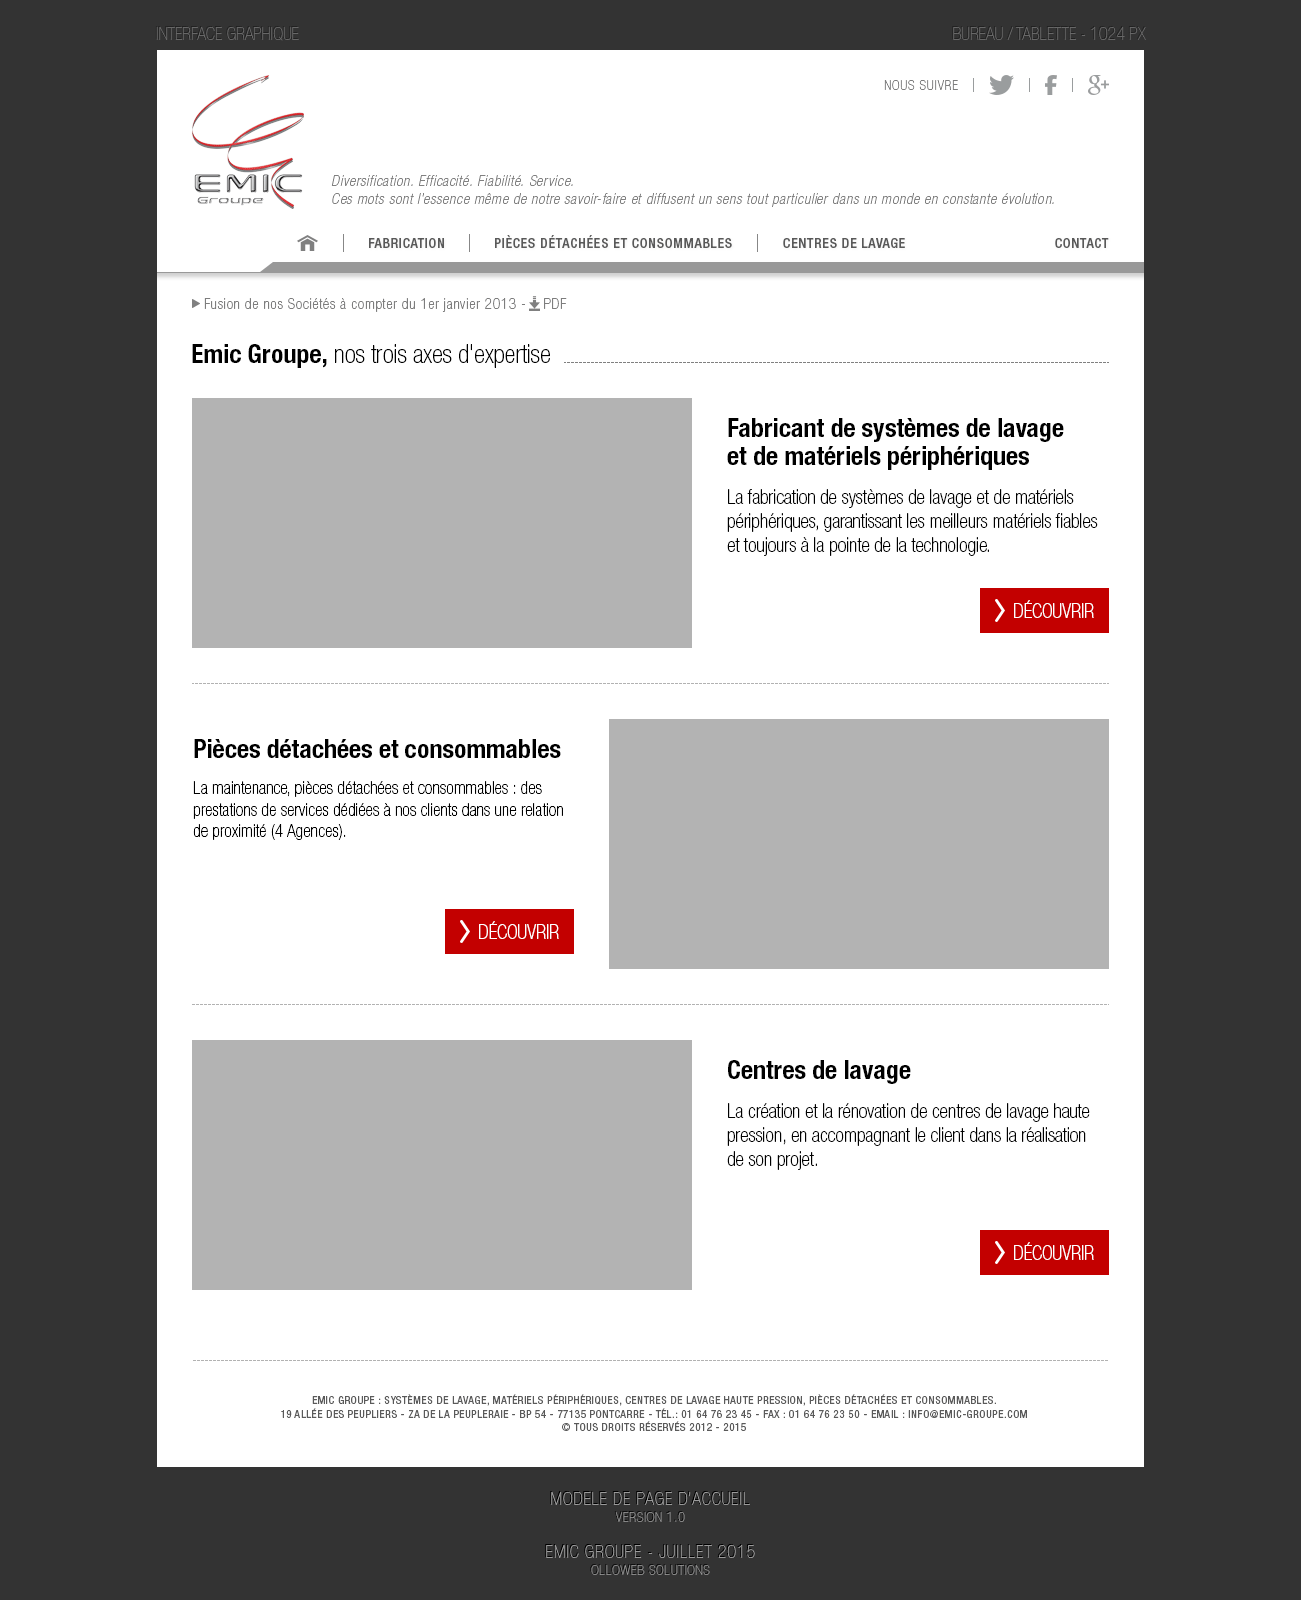 Conception de la version pour bureau et tablette (responsive)